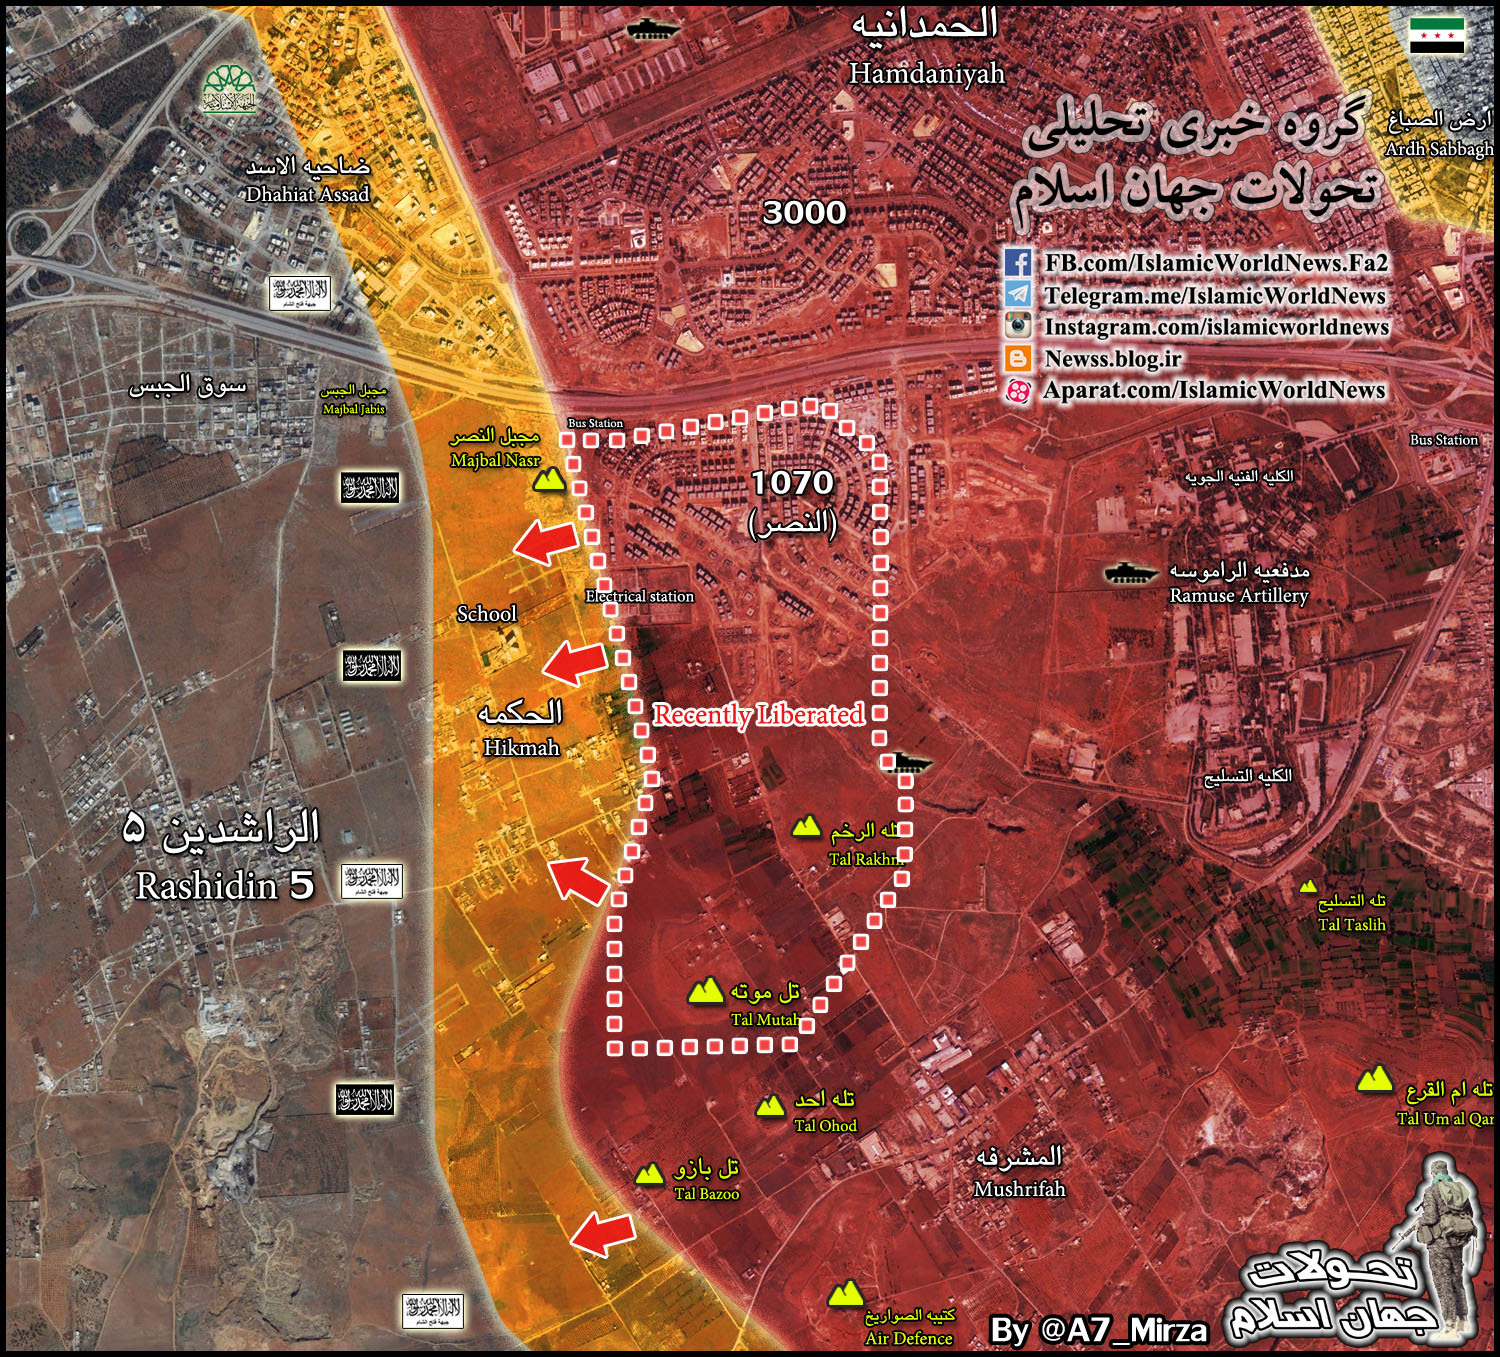 Overview of Military Situation in Aleppo City on November 8, 2016